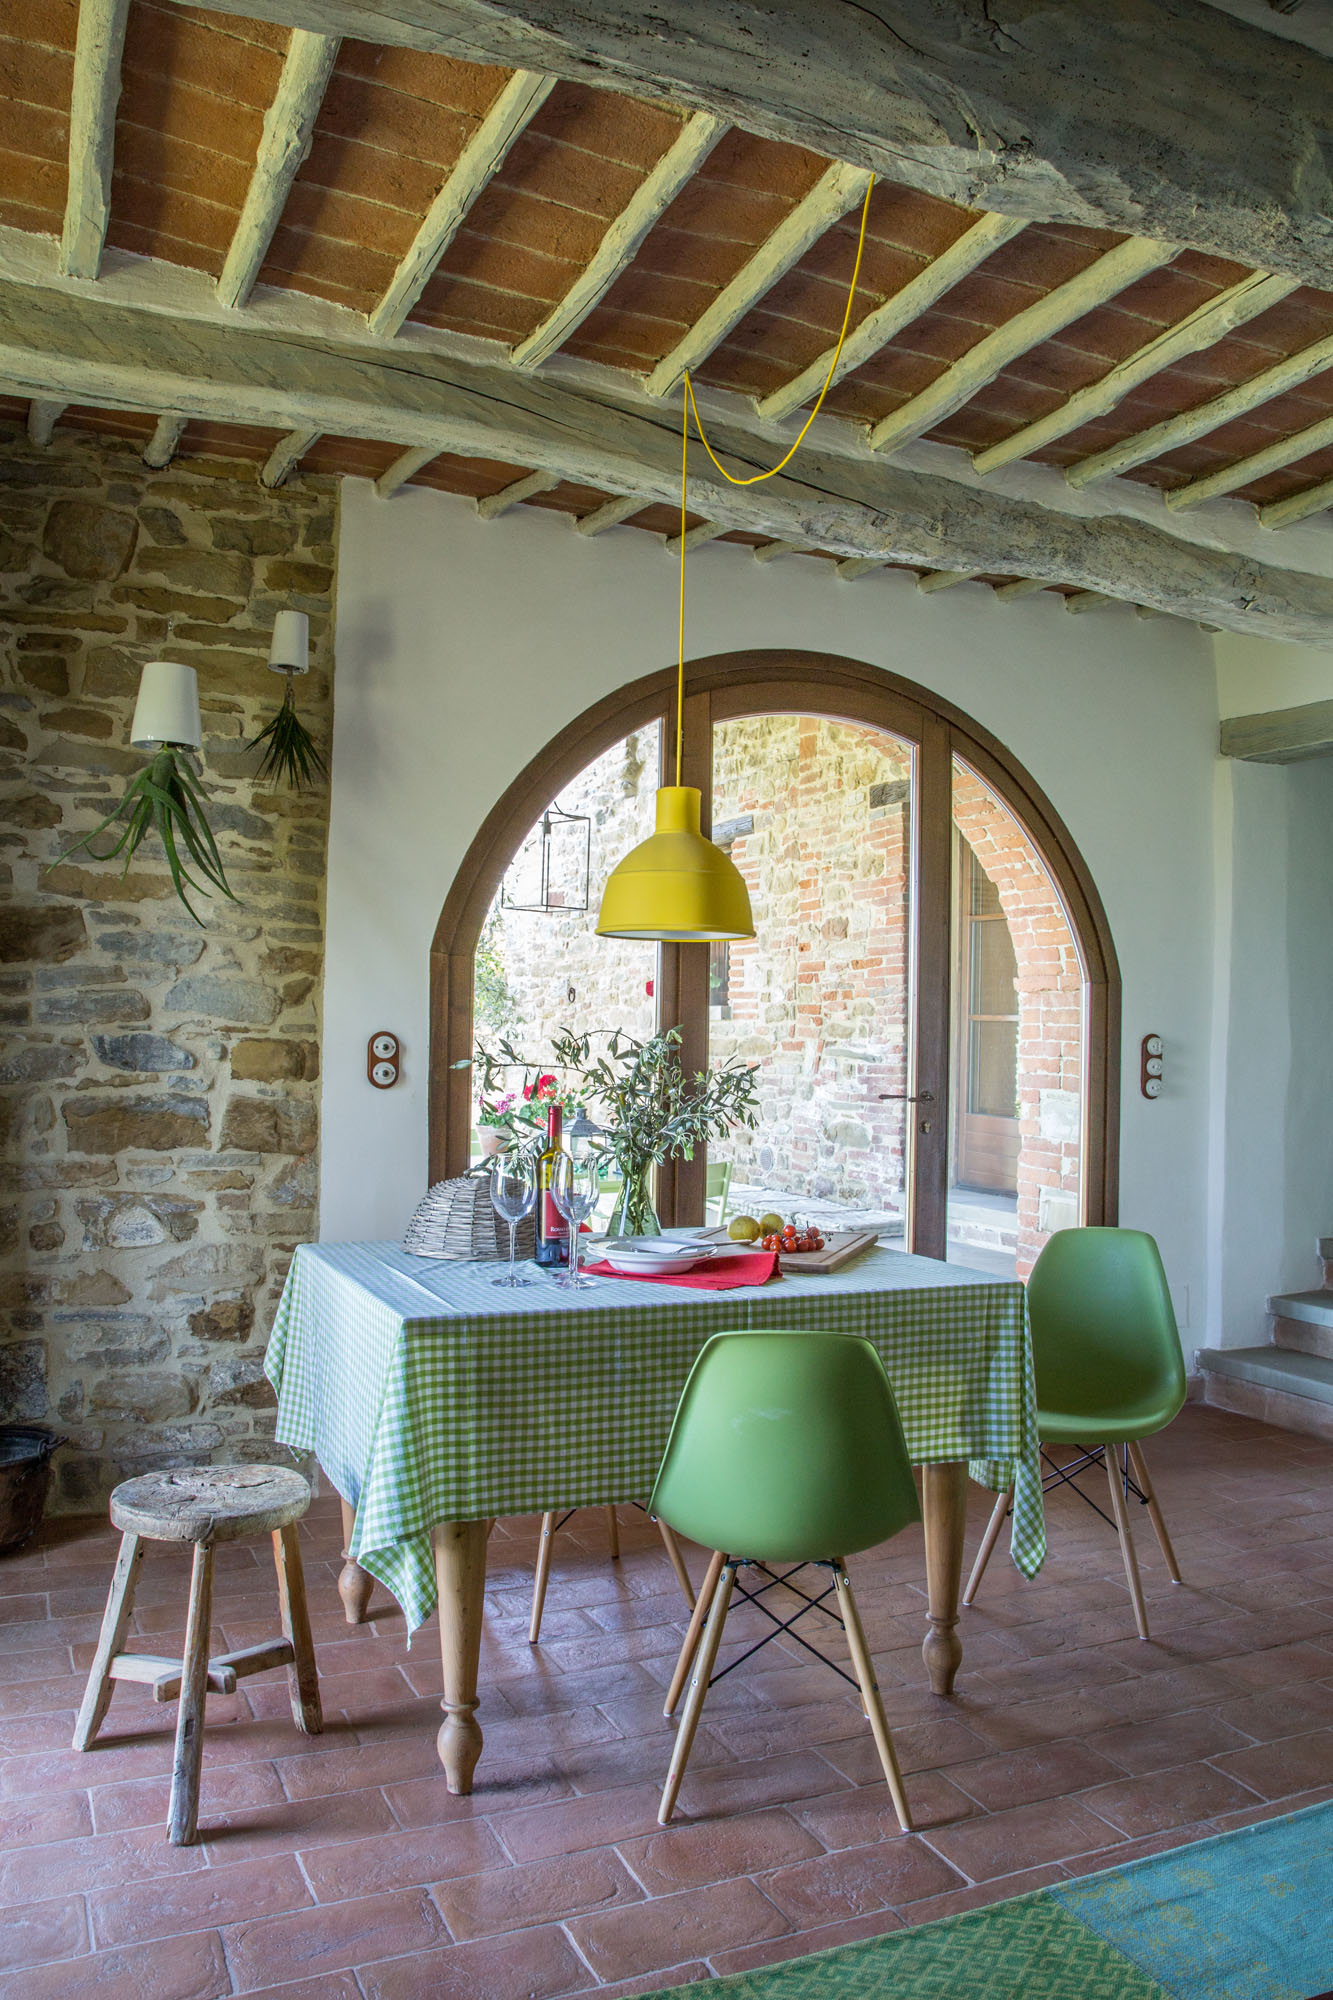 This country kitchen has all the standard elements of terracotta floors, beams and stone walls - made lighthearted with modern chairs and a simpatico checkered cloth!